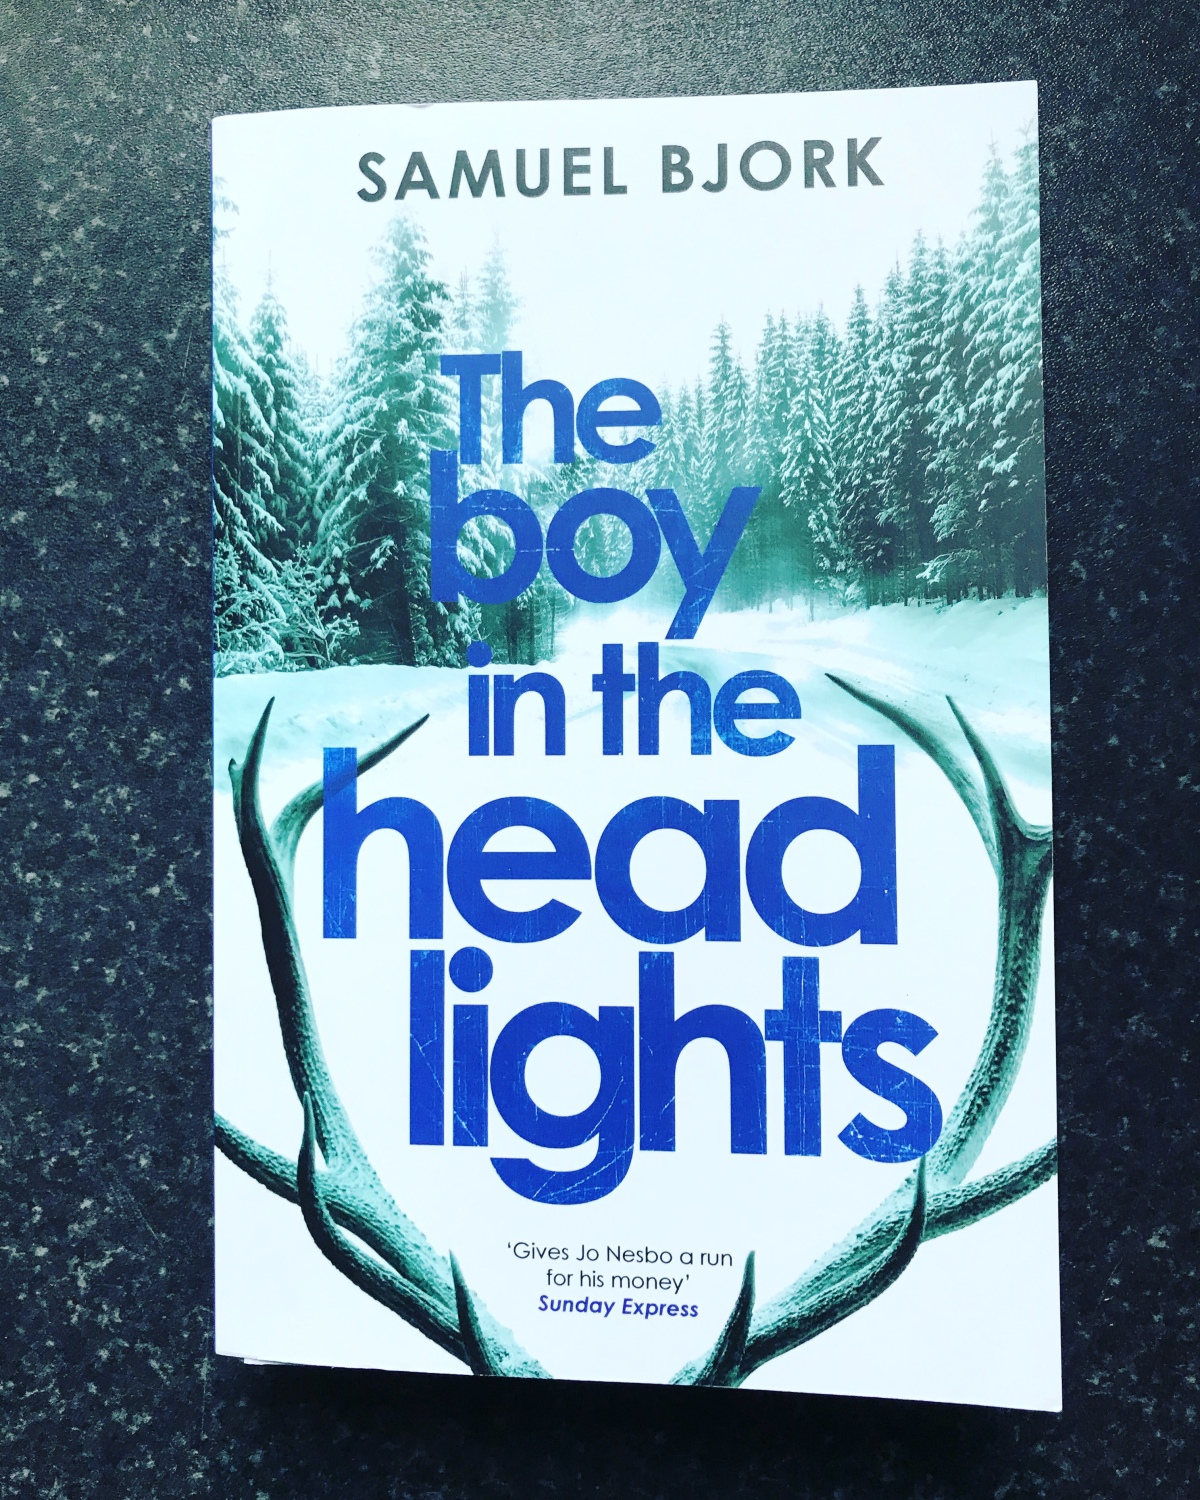 The Boy in the Headlights (Munch & Krüger #3) by Samuel Bjork